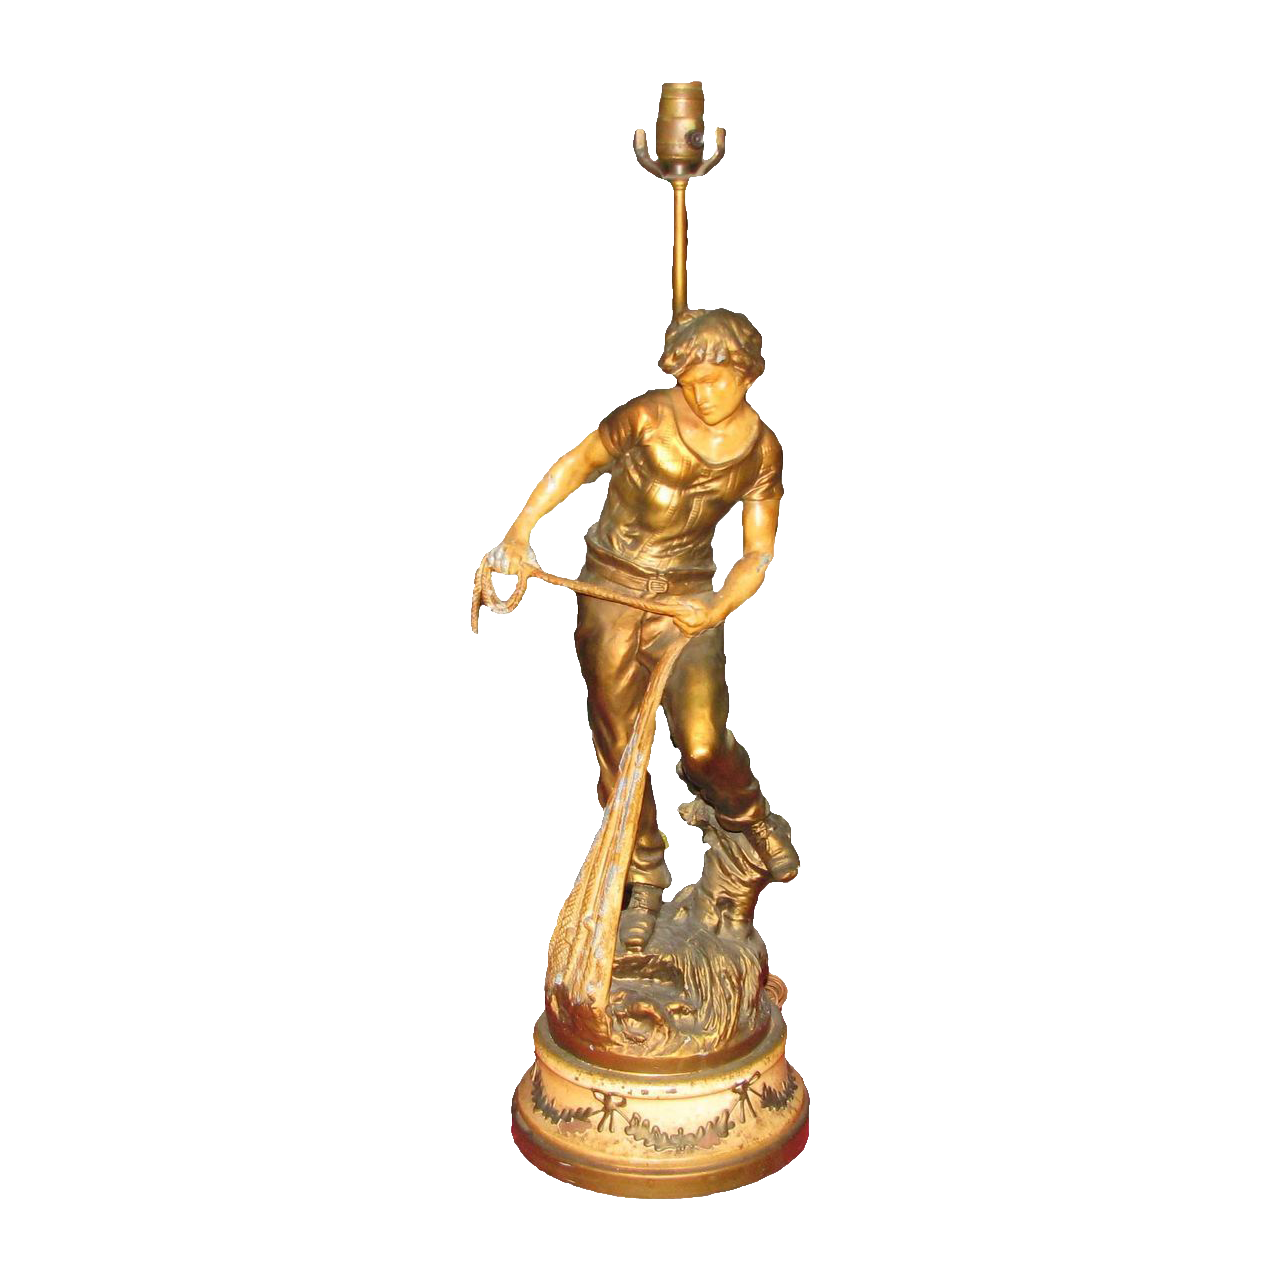 Vintage newel post lamp with young fisherman